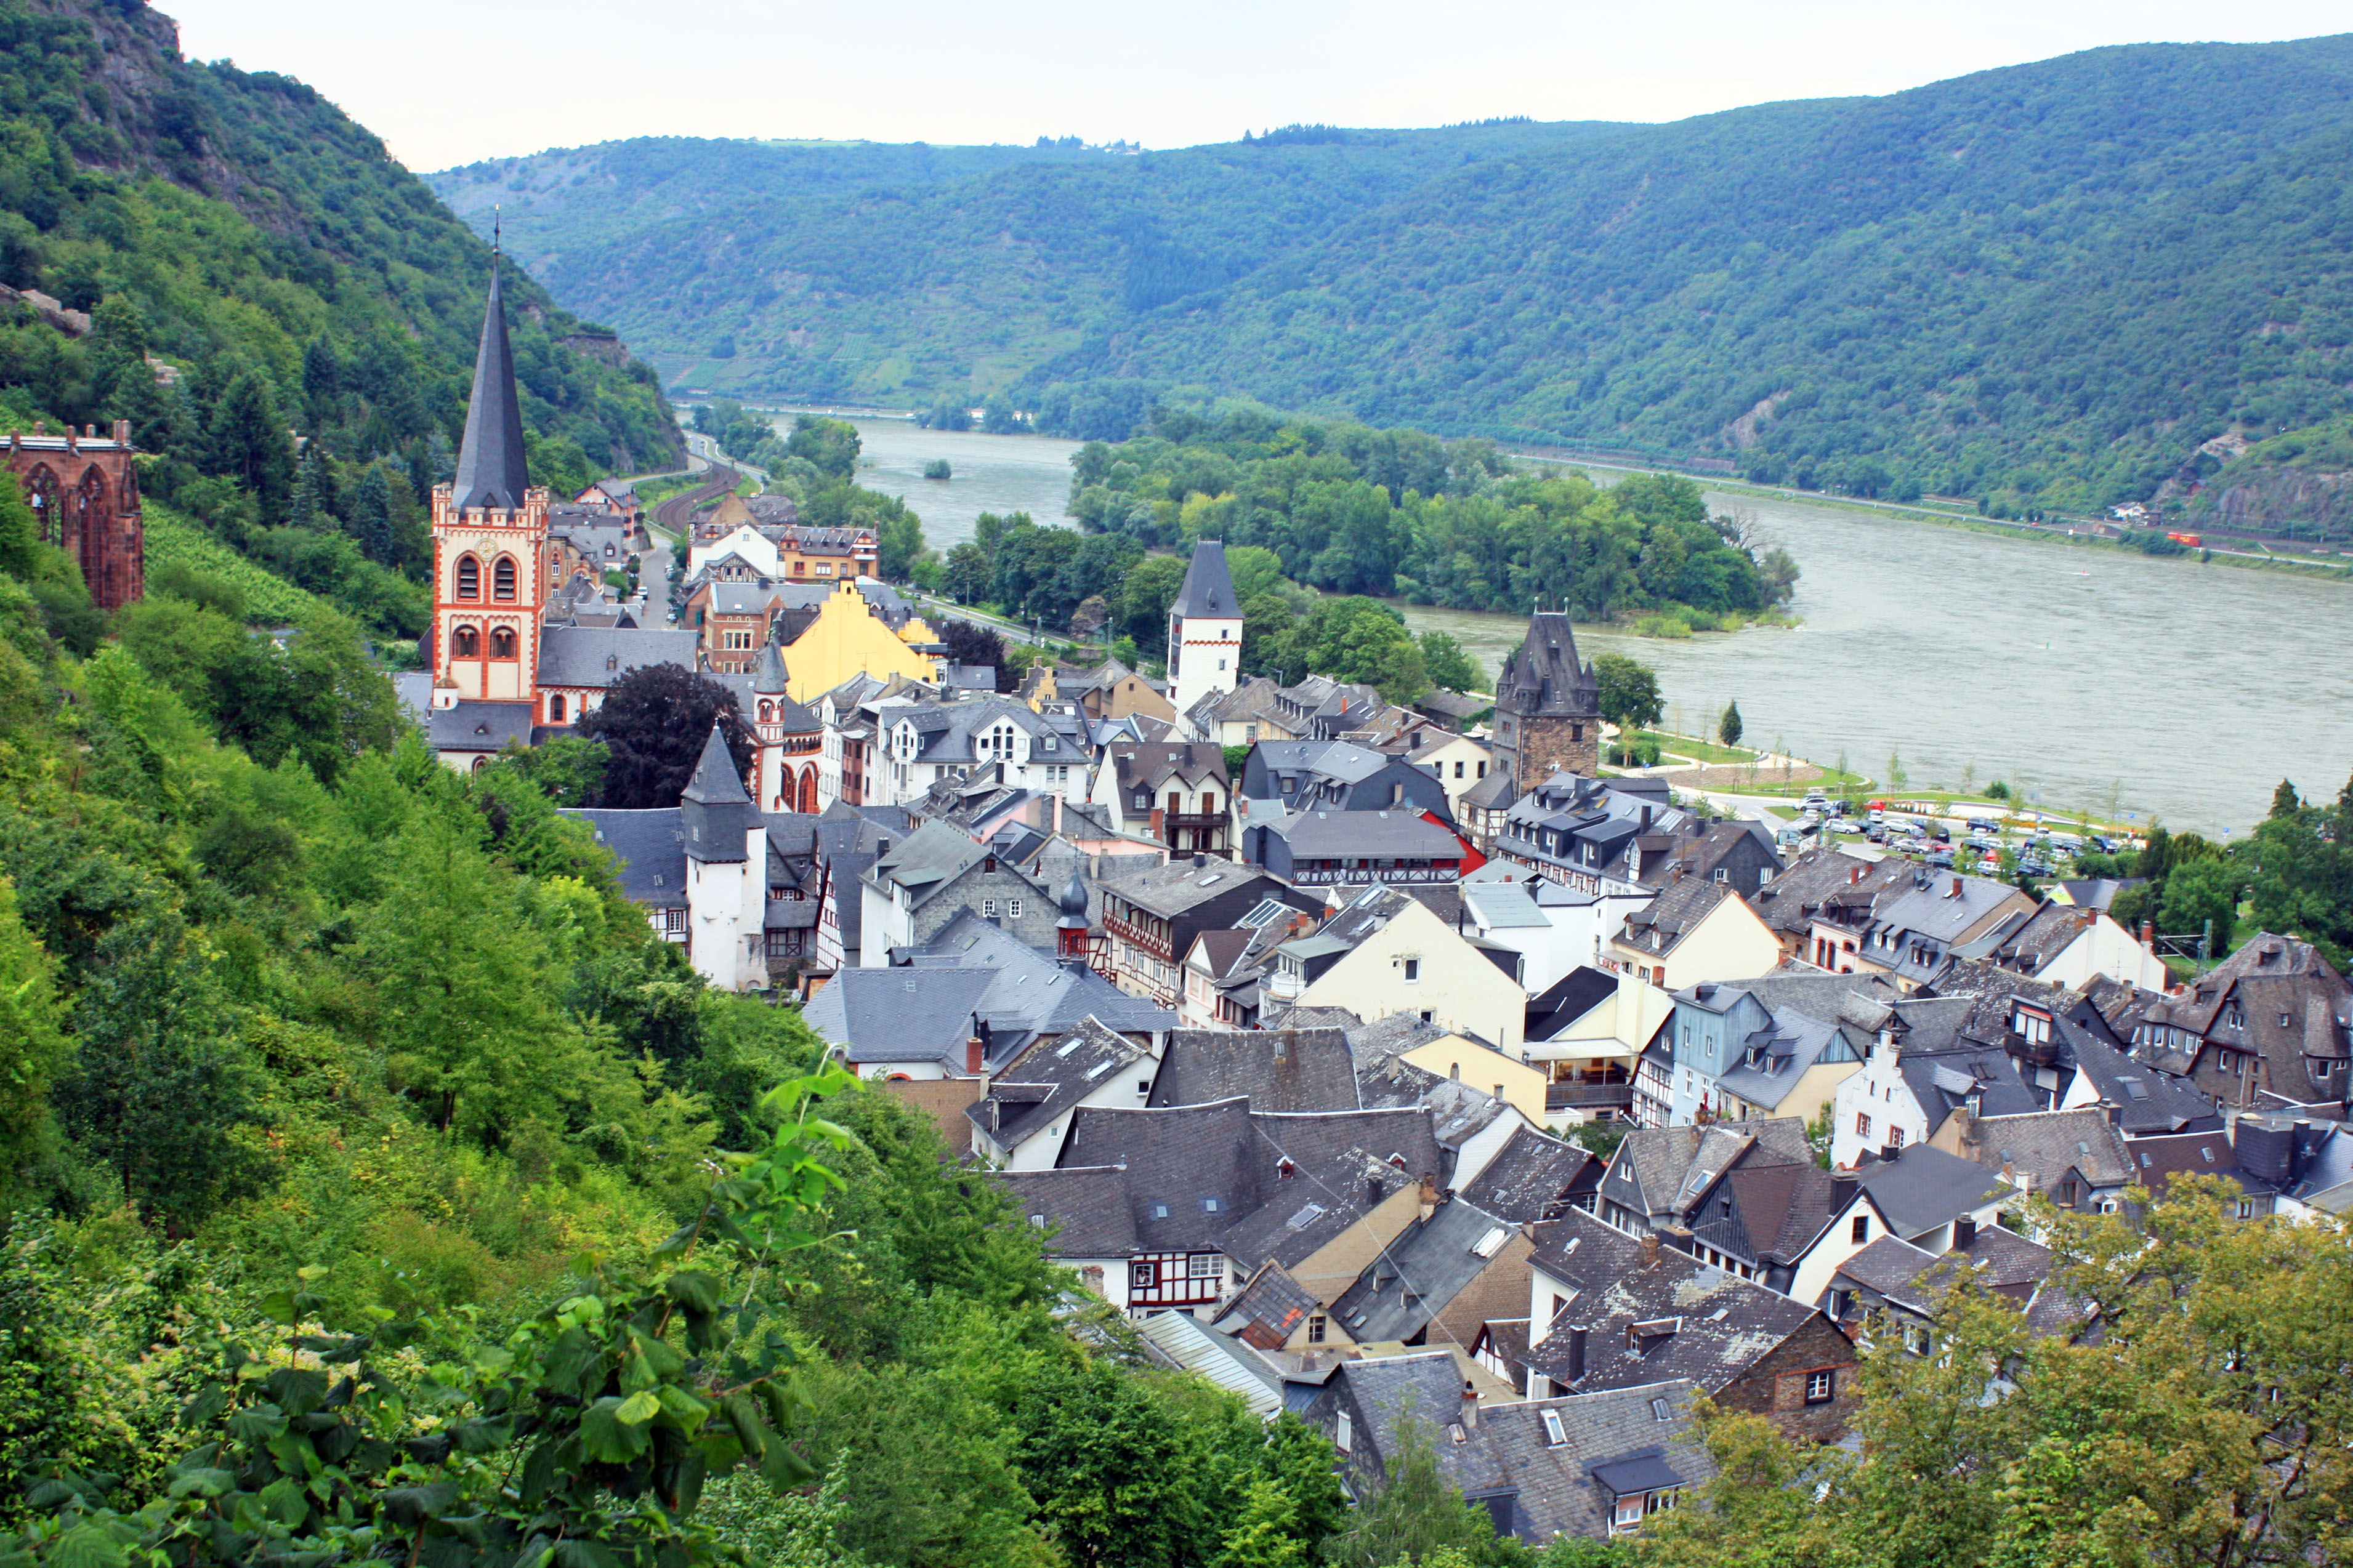 Top of the hill views of the Rhine River and Bacharach.